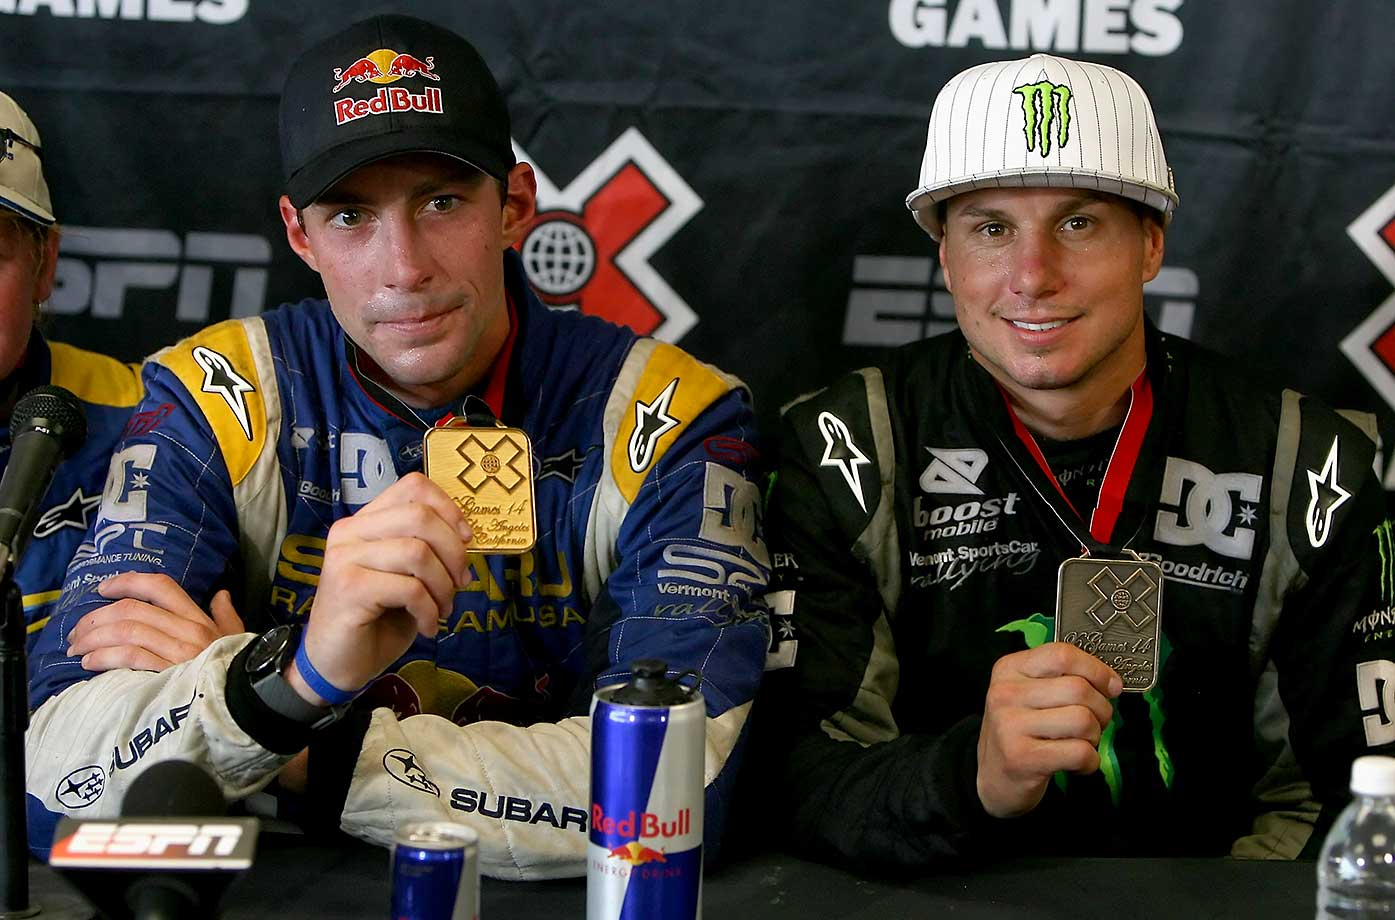 Gold medal winner Travis Pastrana and bronze medal winner Dave Mirra after the Rally Car race during the summer X Games 14 in August 2008 in Carson, Calif.